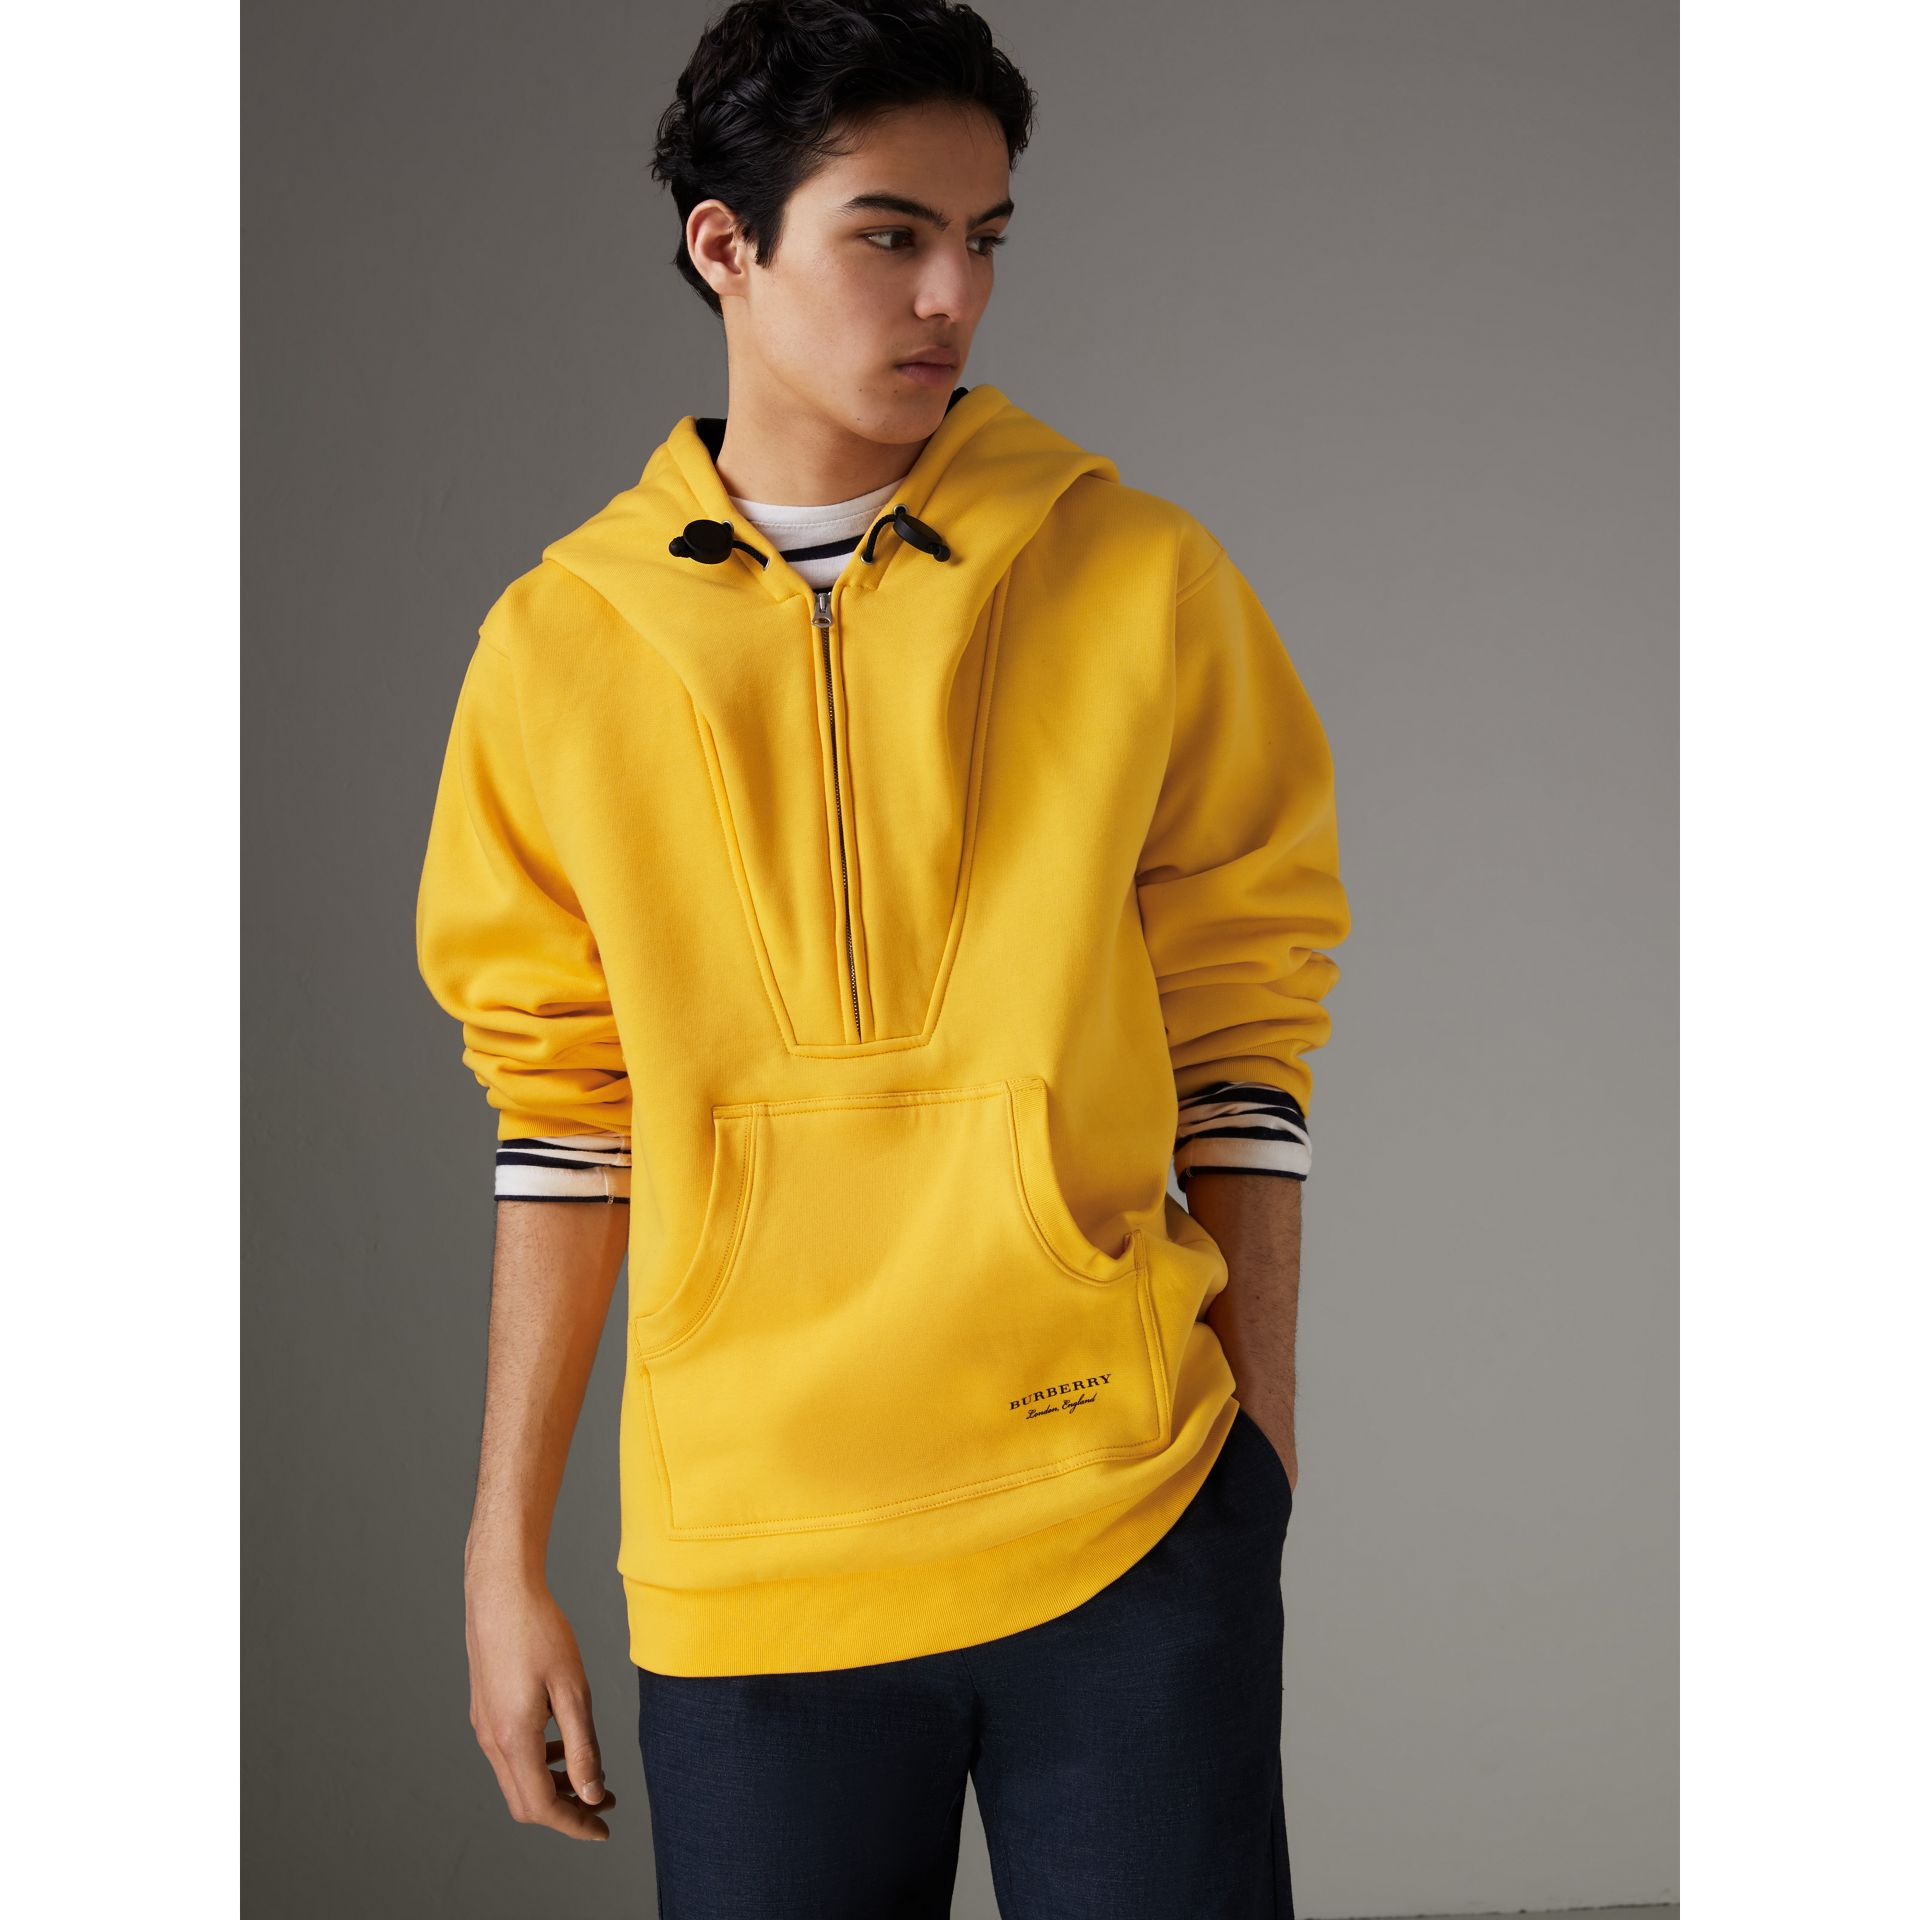 Oversized Sweatshirt Half-zip Hoodie in Bright Yellow - Men | Burberry - gallery image 5